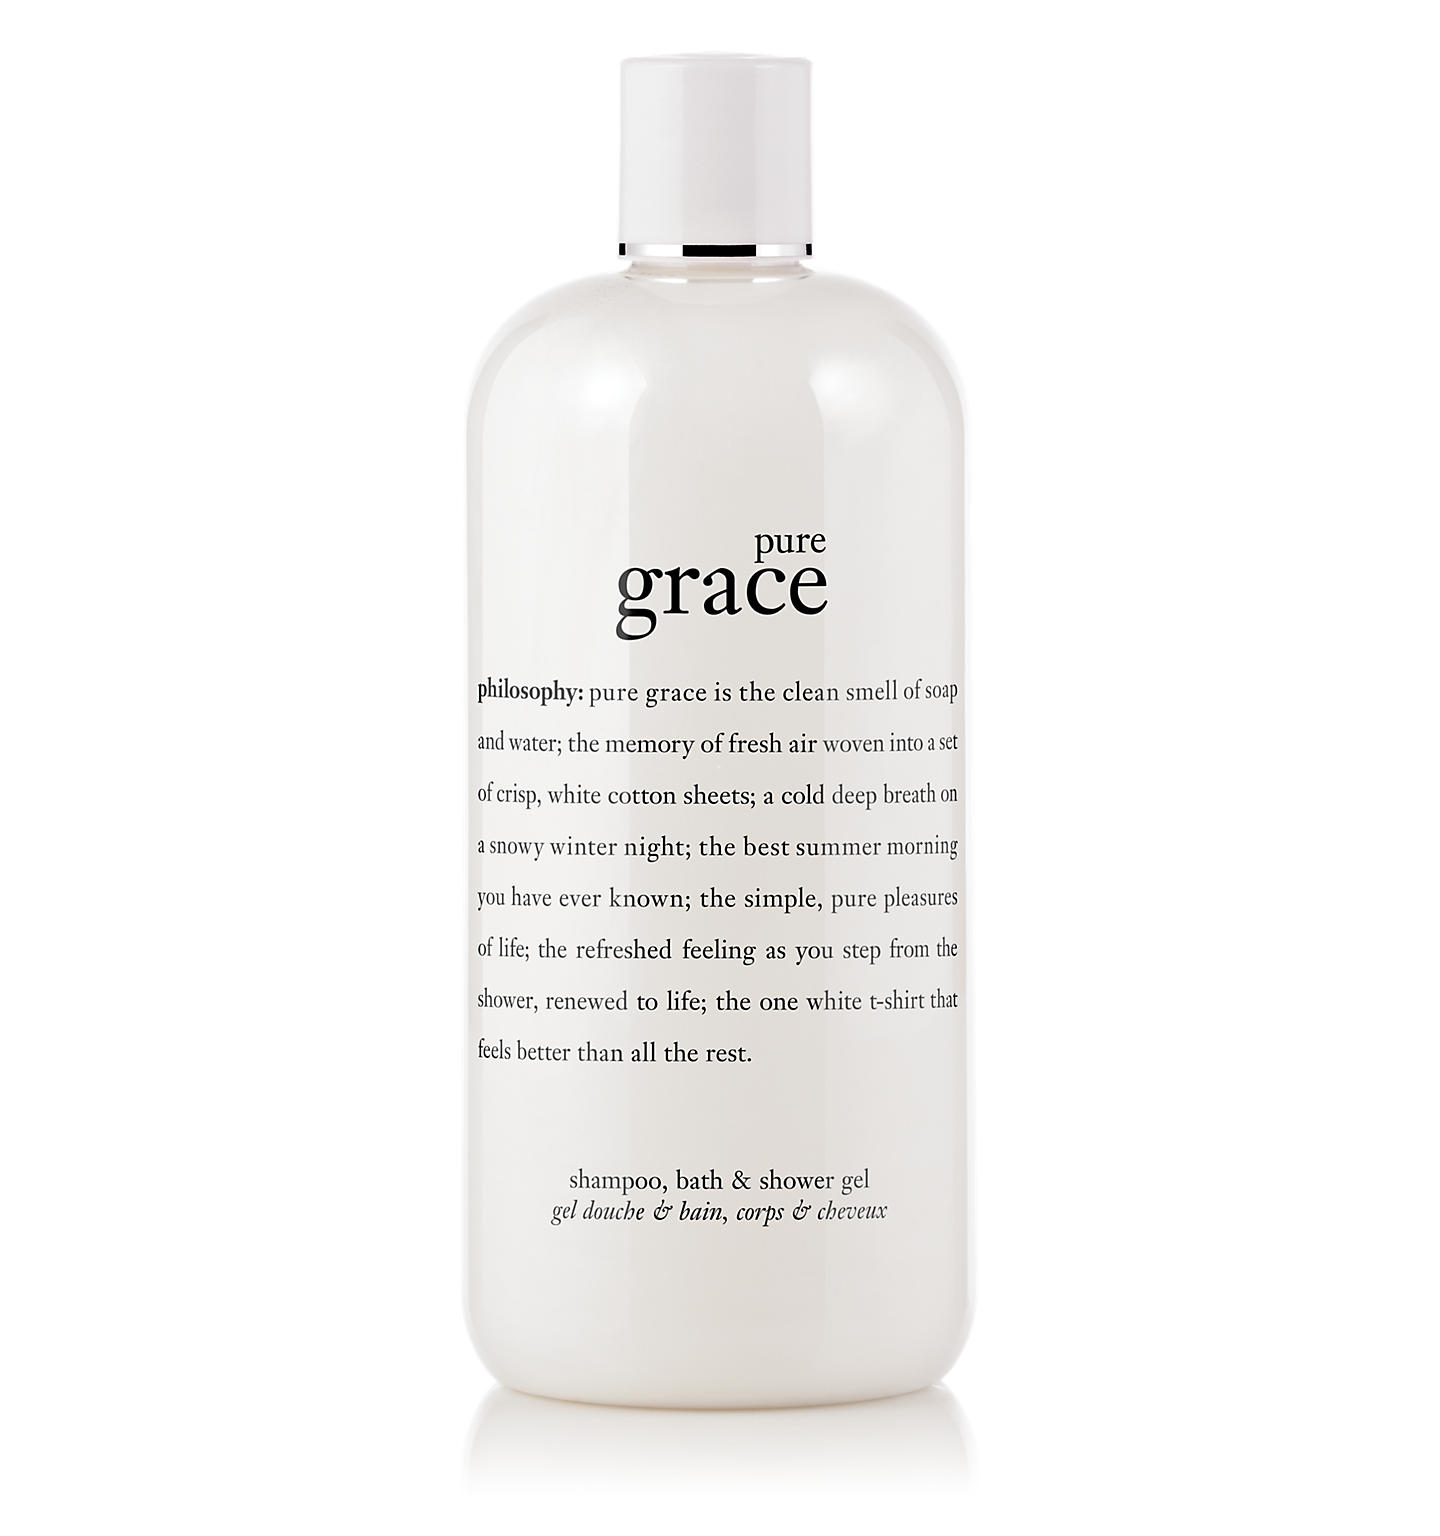 pure grace shampoo, bath & shower gel